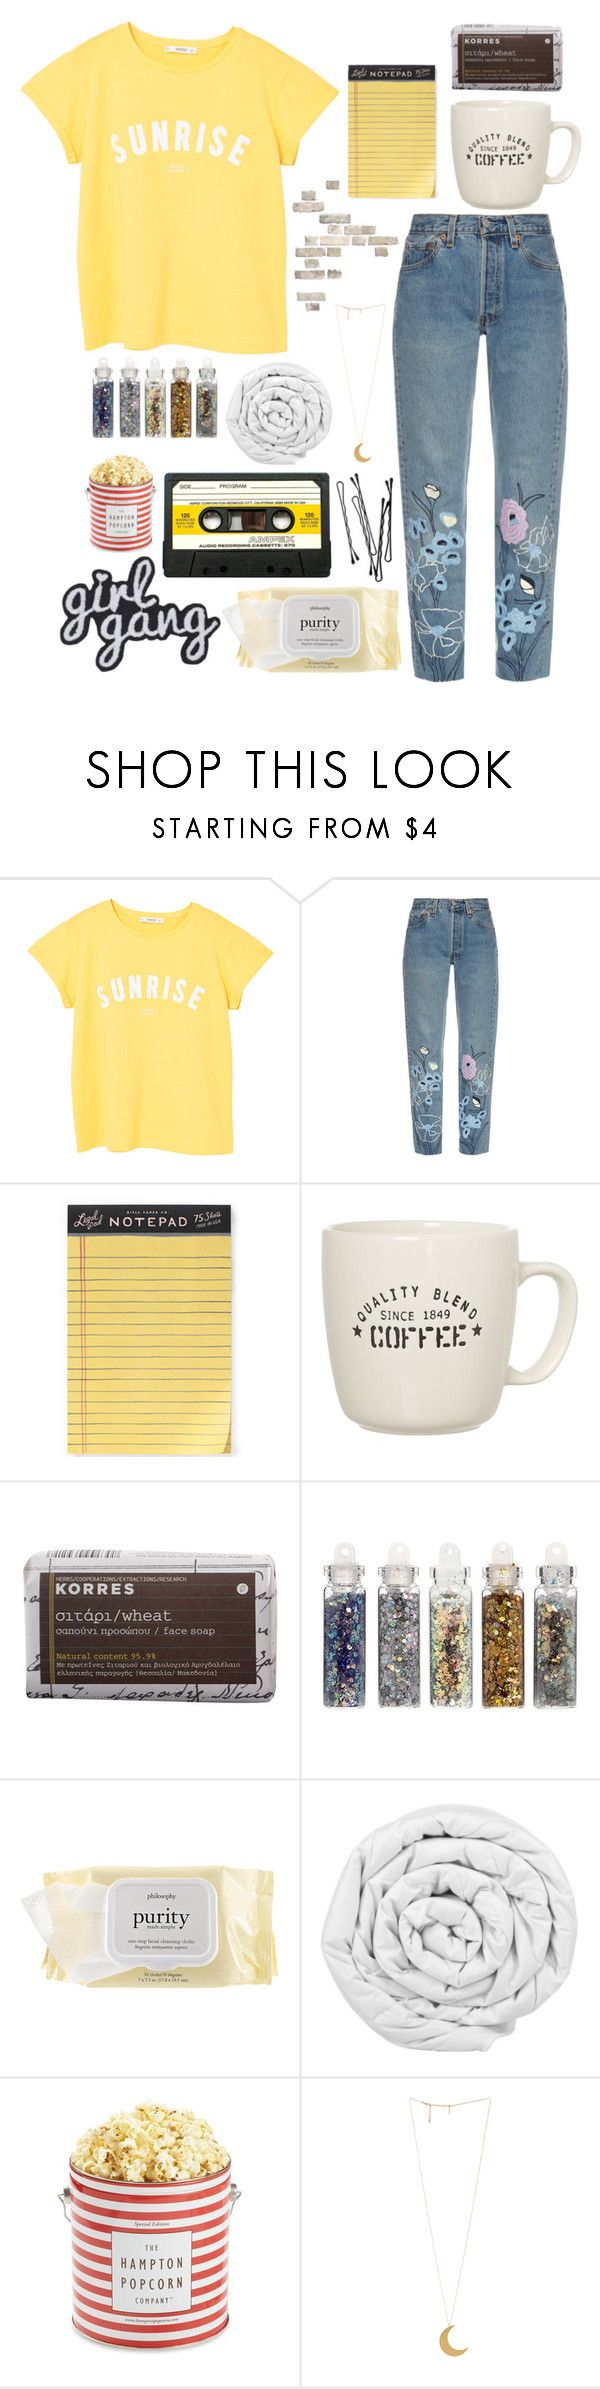 """""""ix ‹‹ no shortcut that we can take"""" by coffee-stained-kisses ❤ liked on Polyvore featuring MANGO, Bliss and Mischief, Rifle Paper Co, Korres, ASOS, philosophy, BOBBY, Brinkhaus and The Hampton Popcorn Company"""